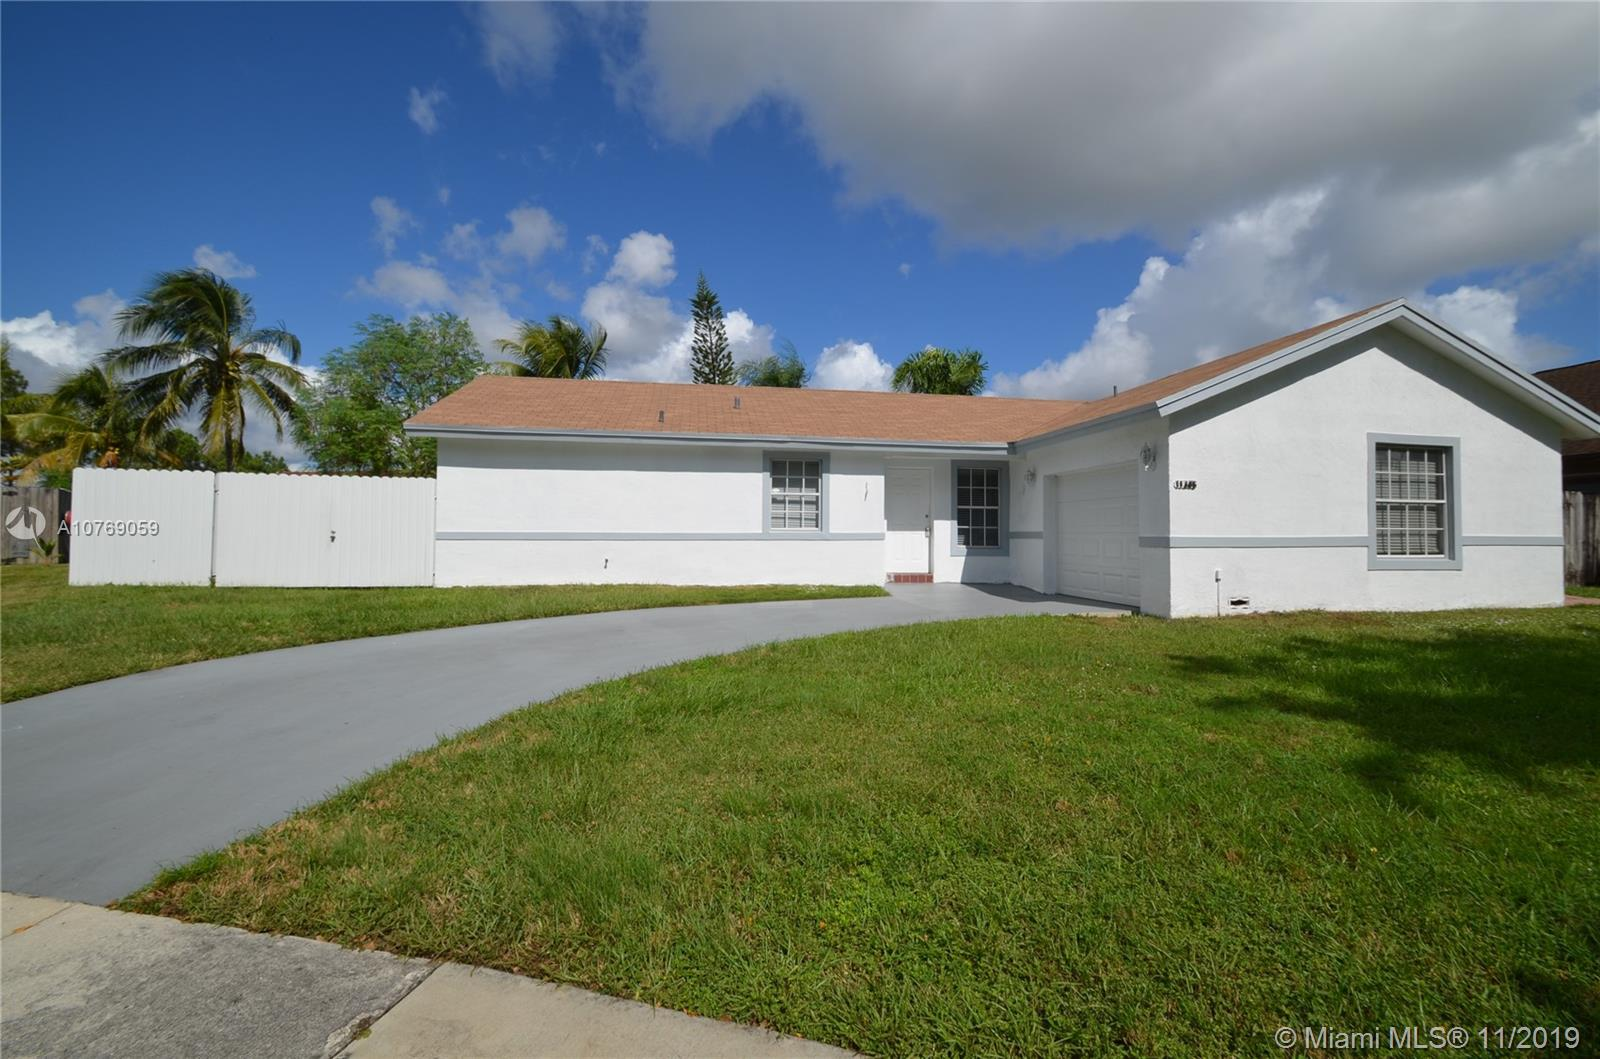 11345 SW 157th Ter, Kendall in Miami-dade County County, FL 33157 Home for Sale